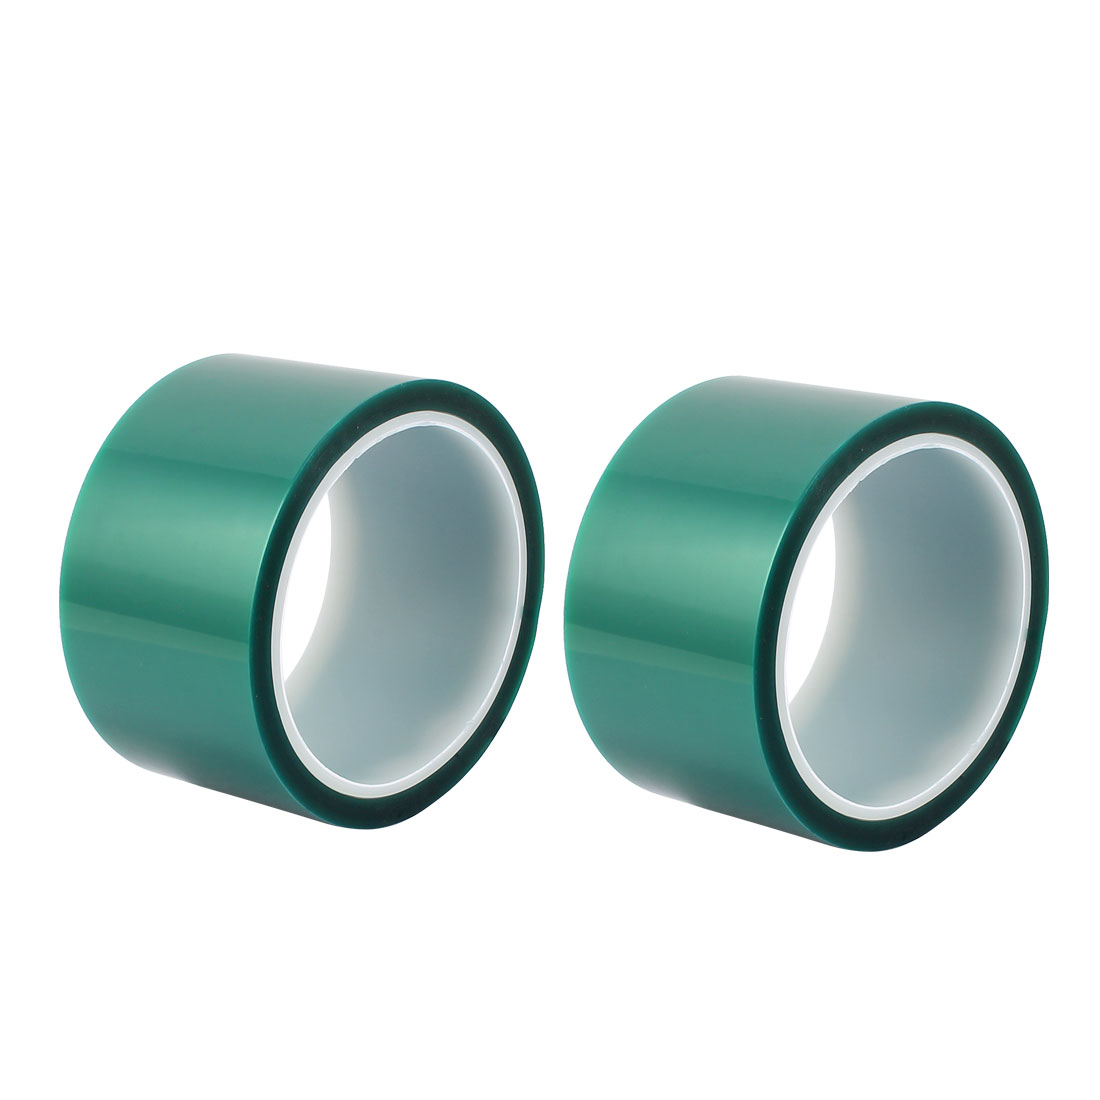 2pcs 55mm Width 33M Long Green PET High Temperature Heat Resistant PCB Solder Tape